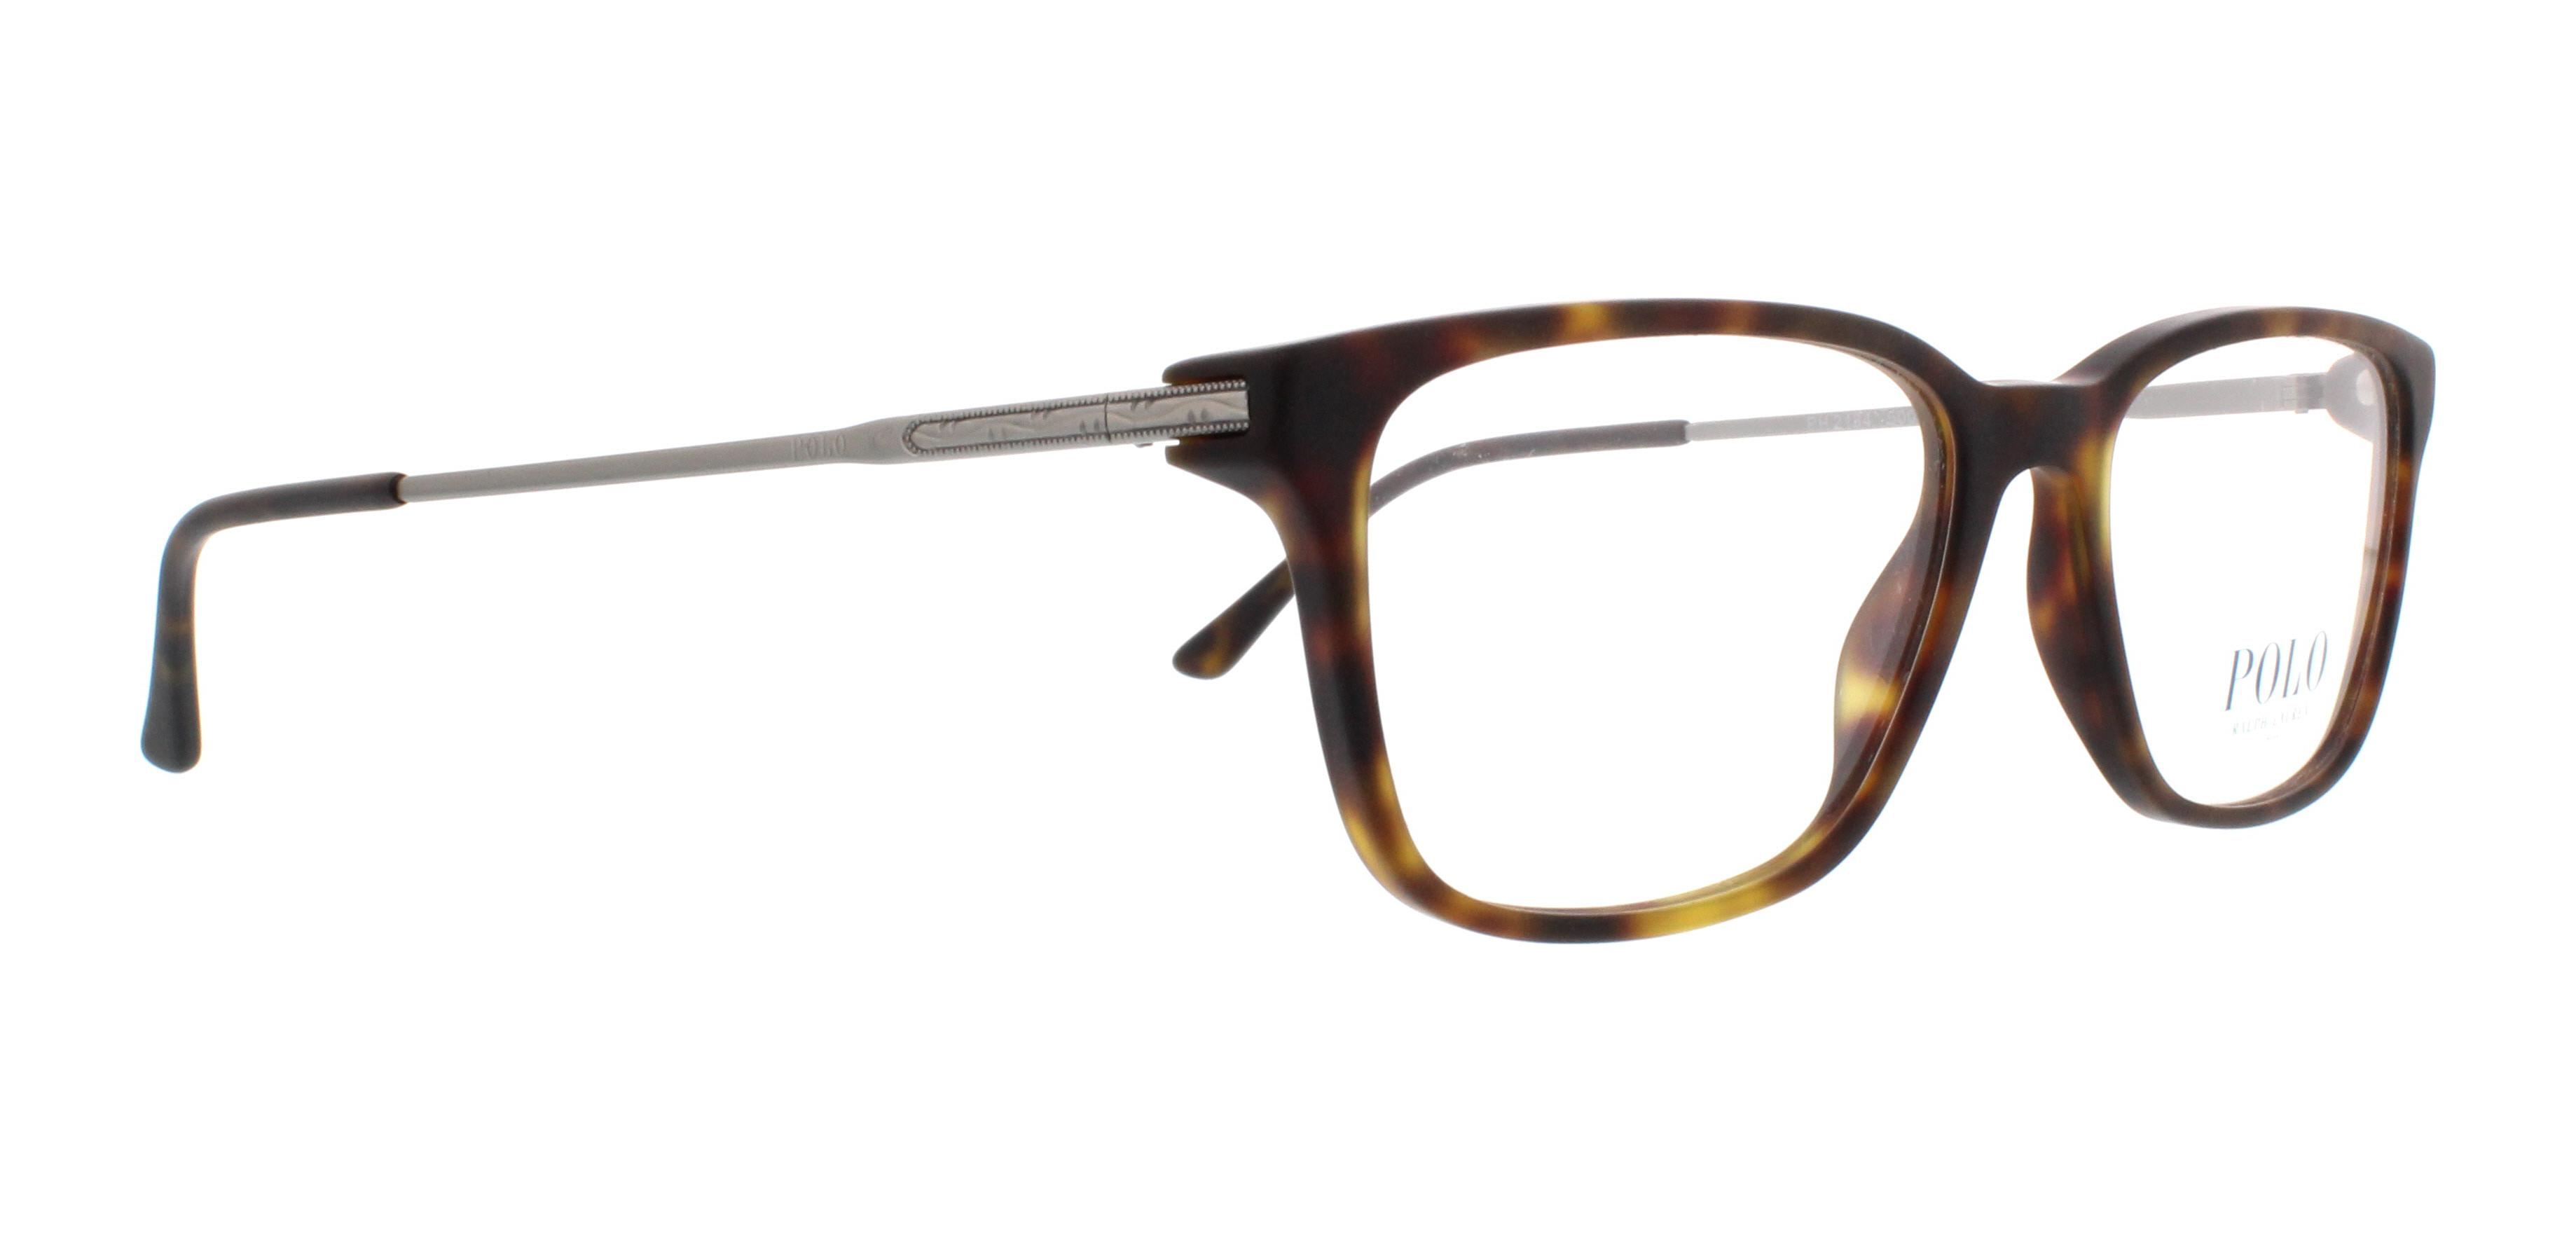 6d03a595b0 Designer Frames Outlet. Polo PH2134